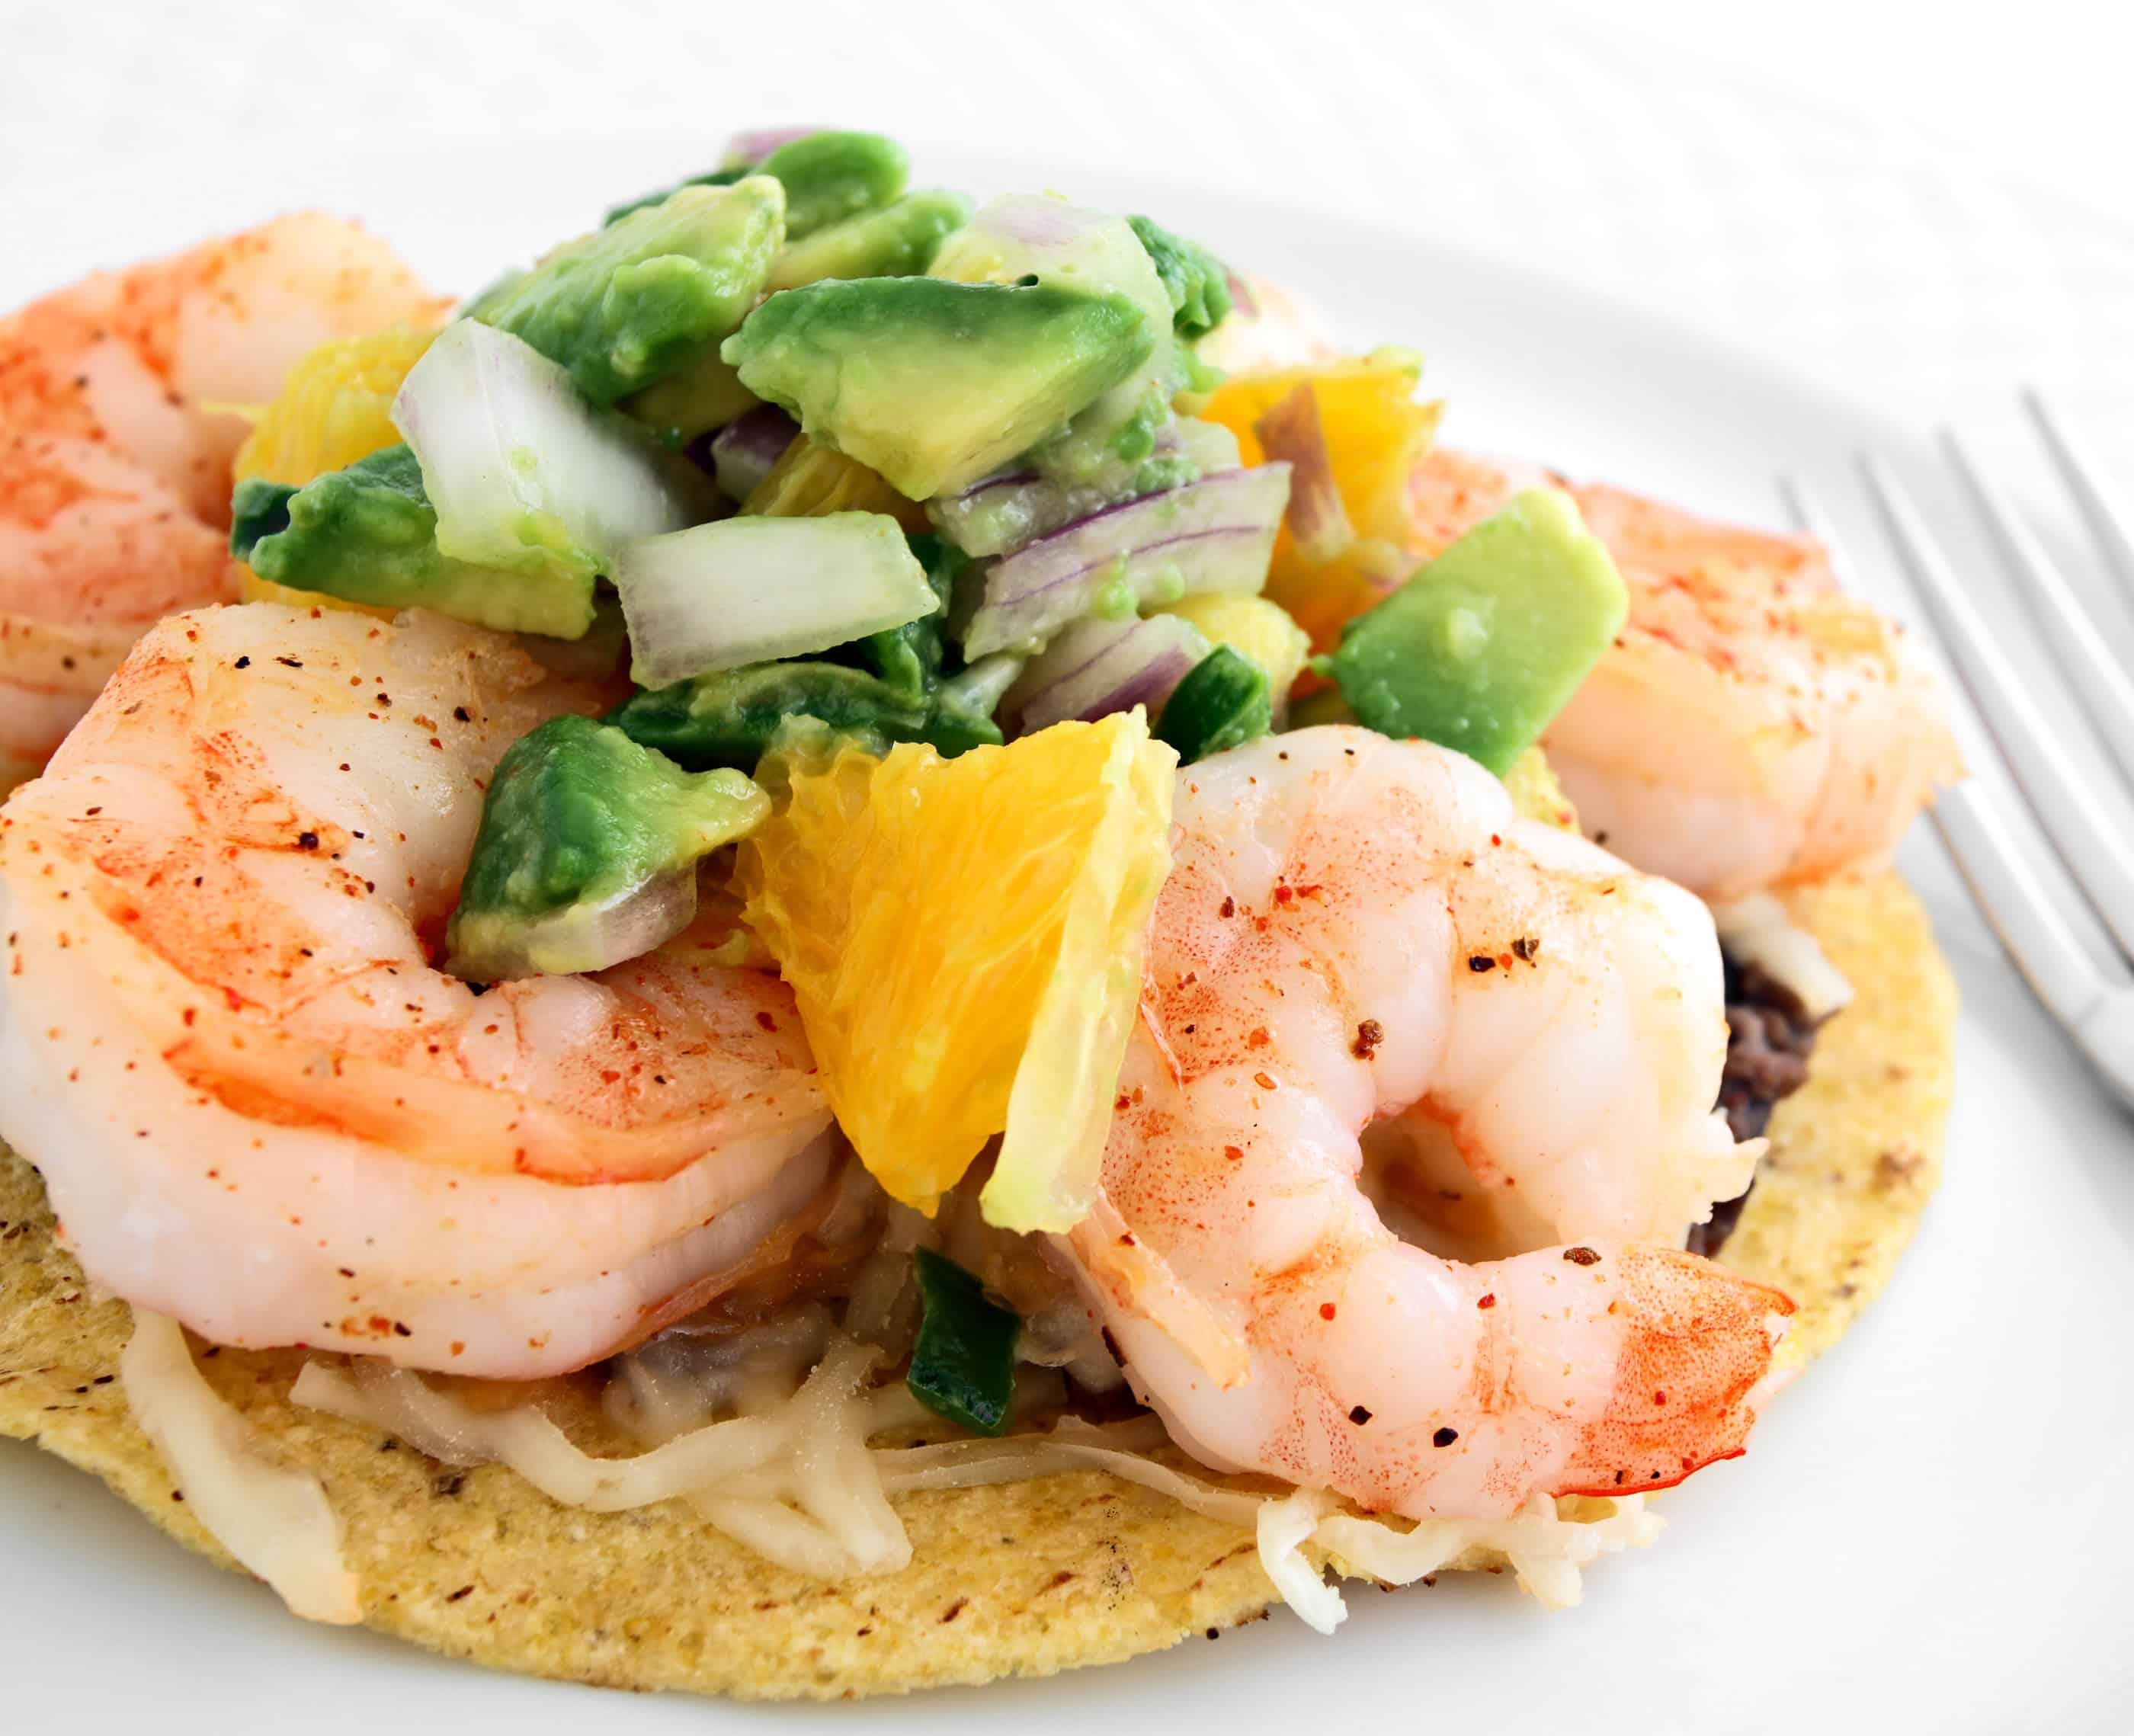 Shrimp tostada with avacodo salsa and refried beans